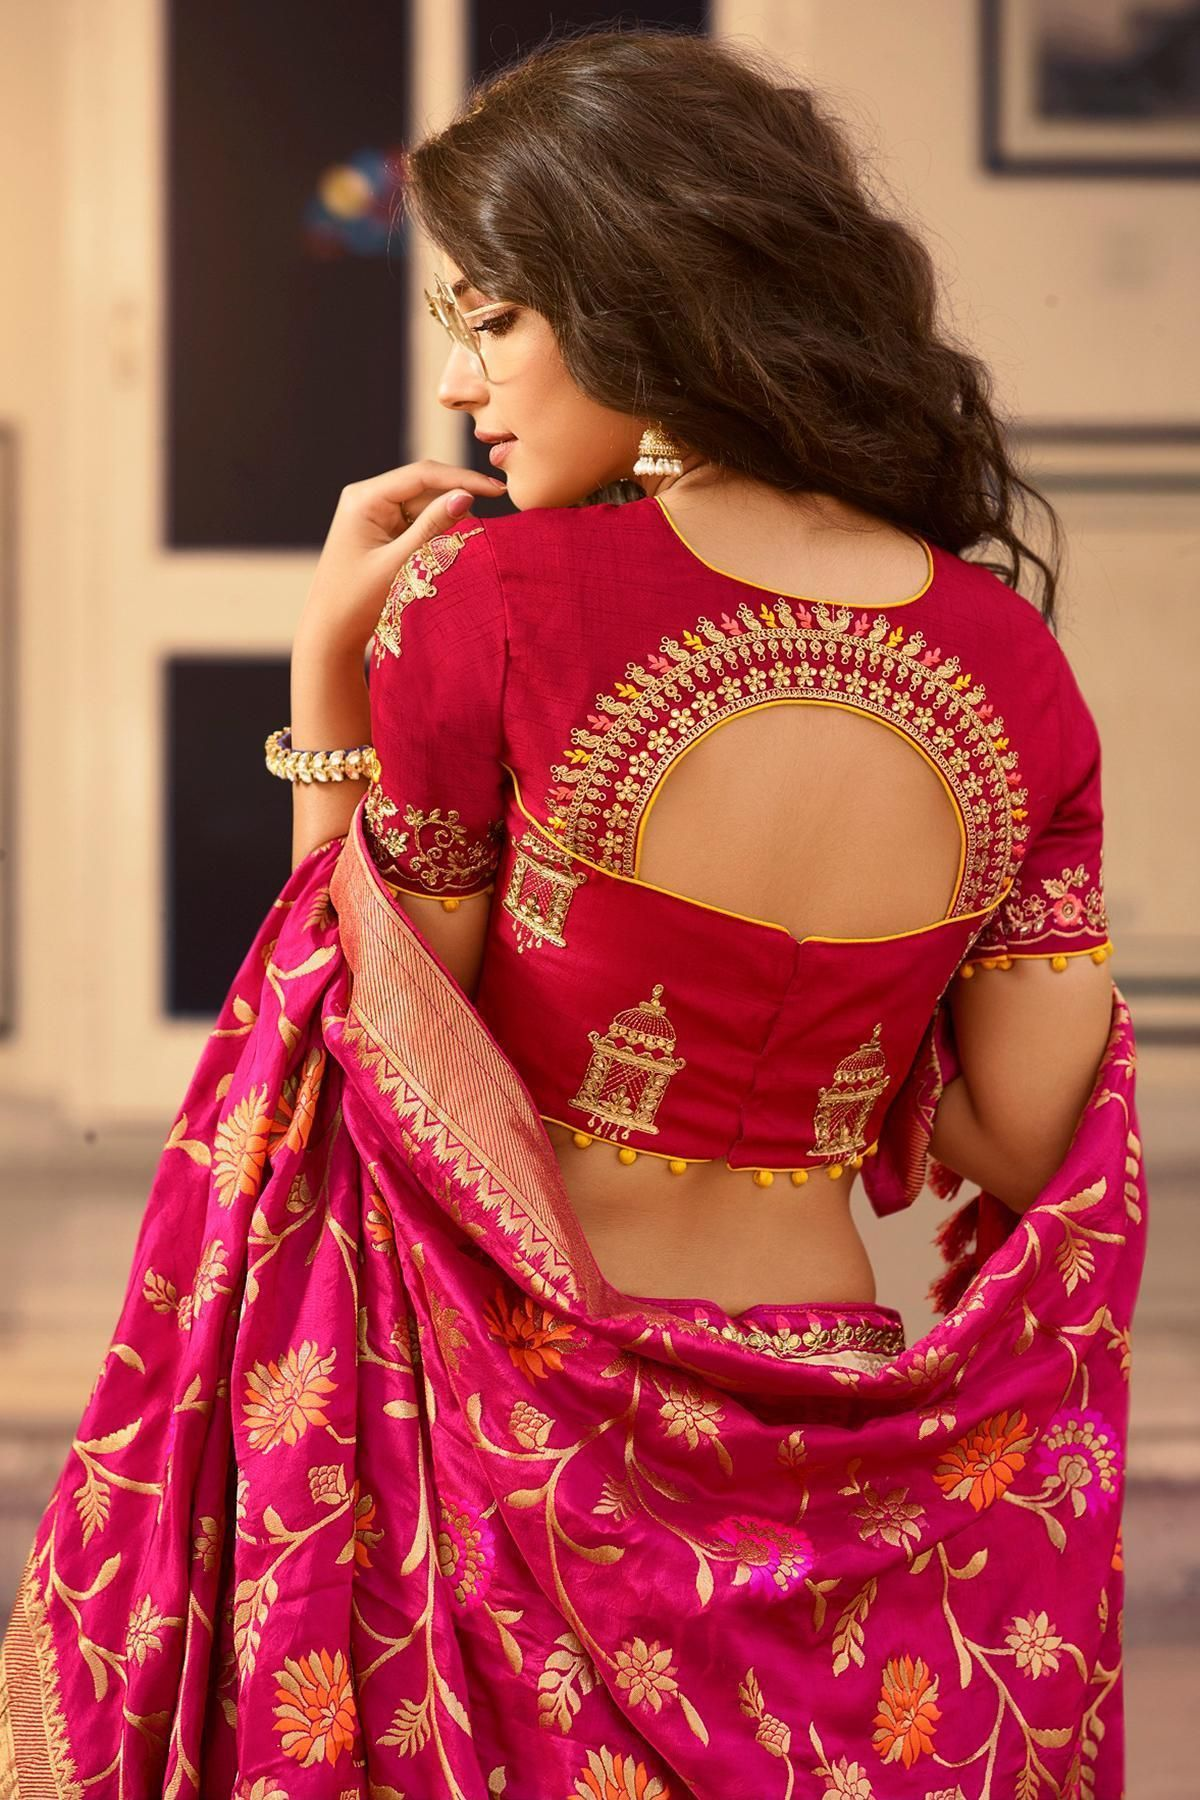 Golden and Ruby Red Silk Lehenga Choli #blousedesignslatest